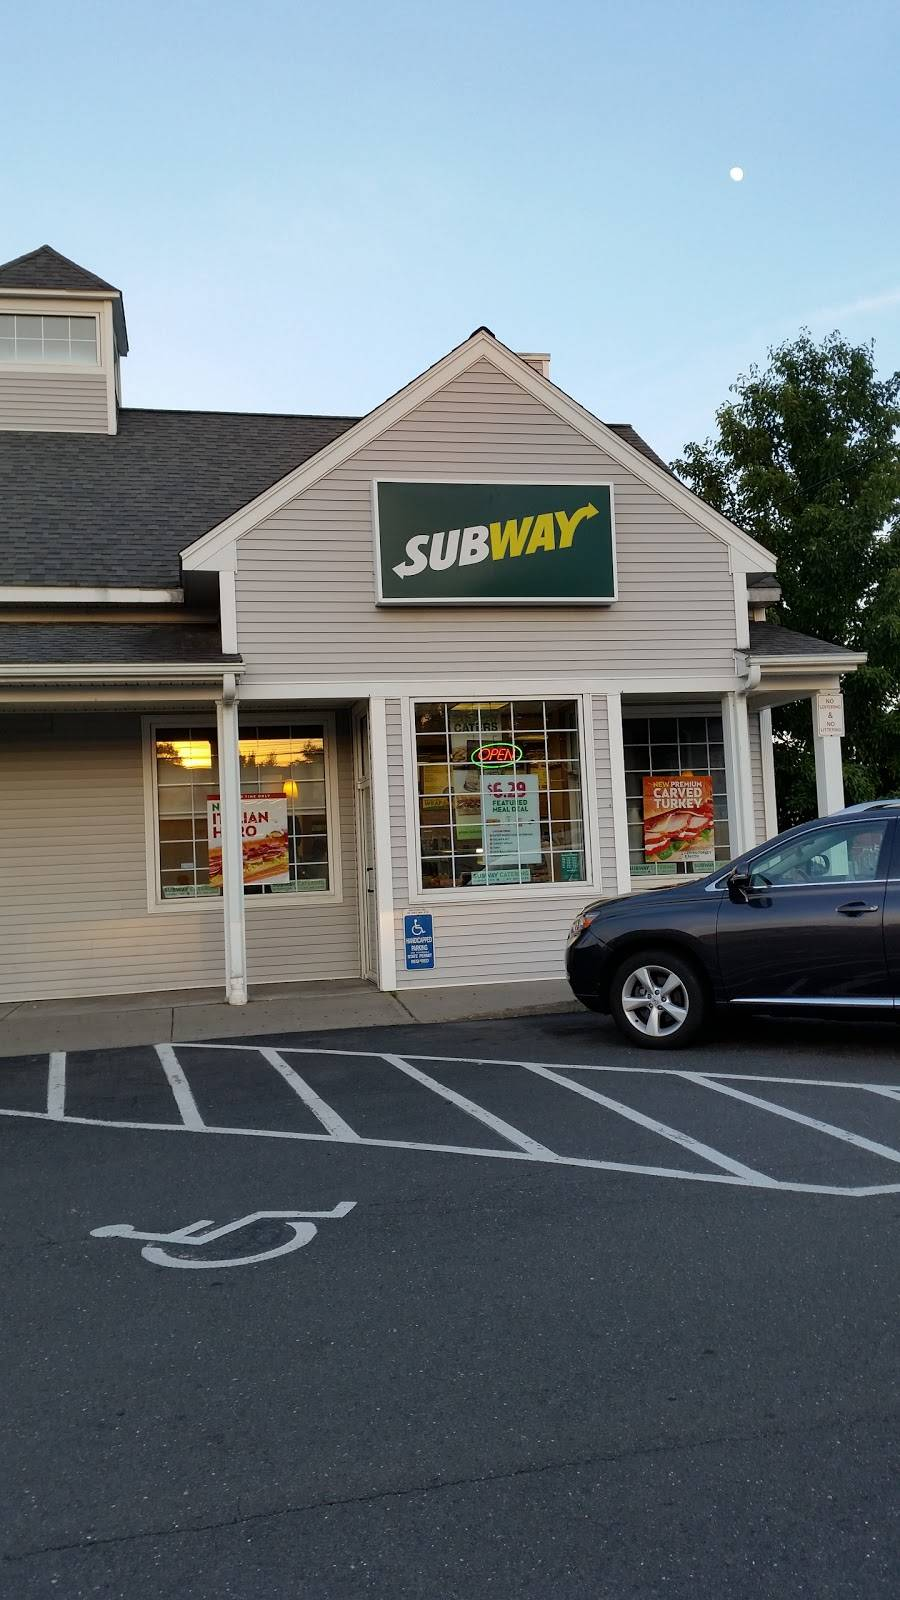 Subway | meal takeaway | 450 New Park Ave Unit C, West Hartford, CT 06110, USA | 8602360887 OR +1 860-236-0887